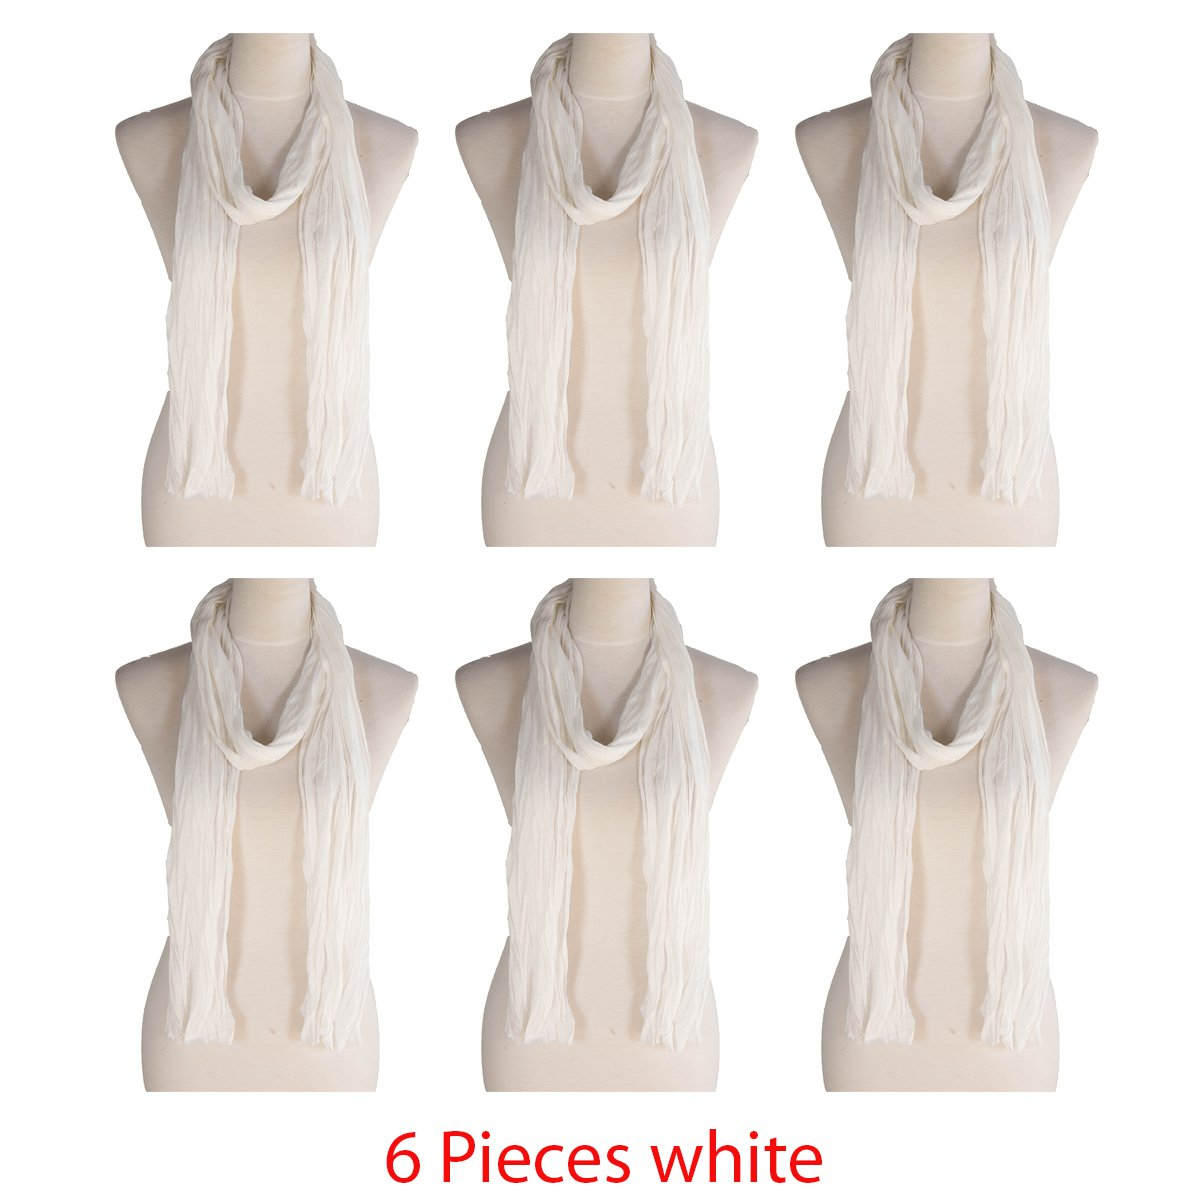 6 Pieces white Color Scarf, more than 40 colors, 76'' long, 14'' wide, Jersey Scarf (6 Pieces White)